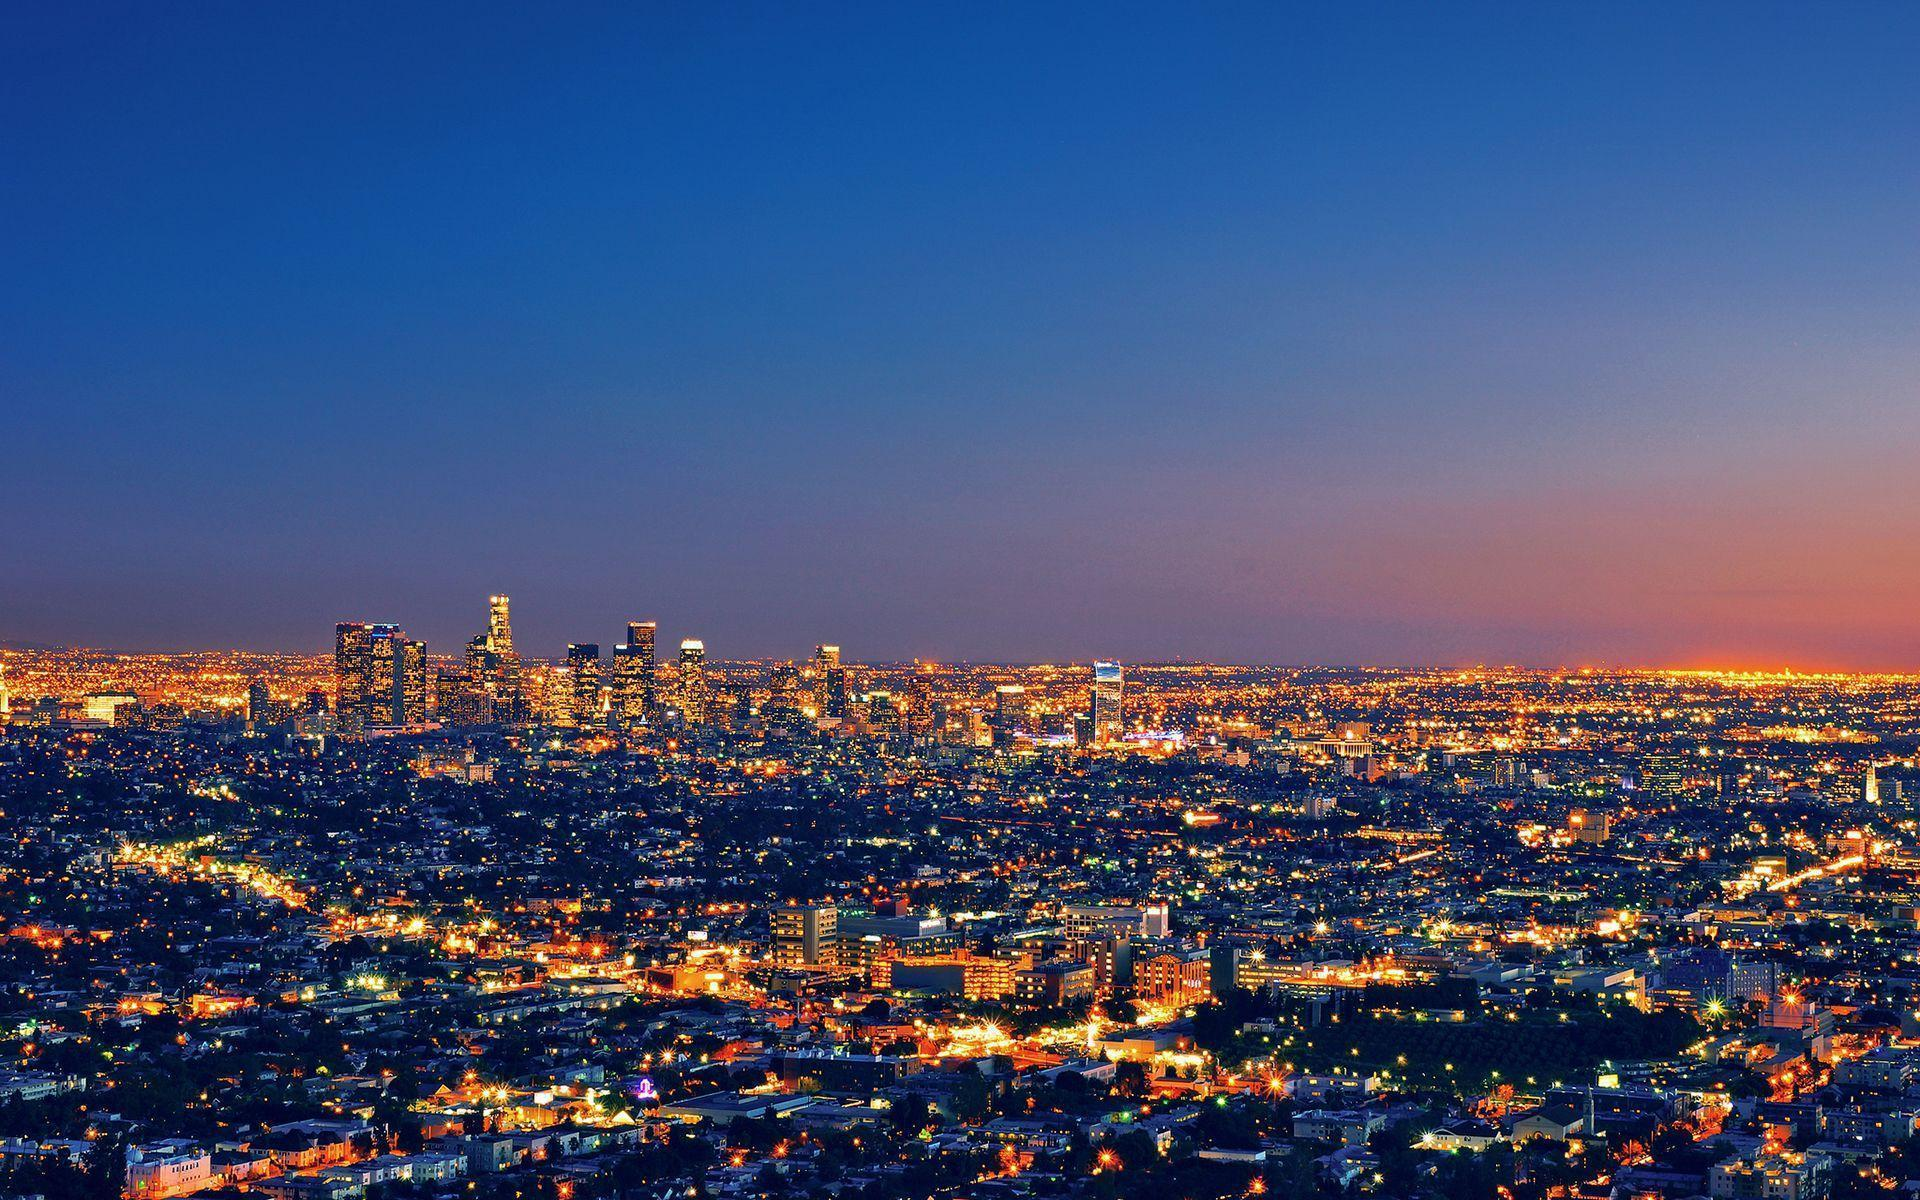 Los Angeles wallpaper – wallpaper free download